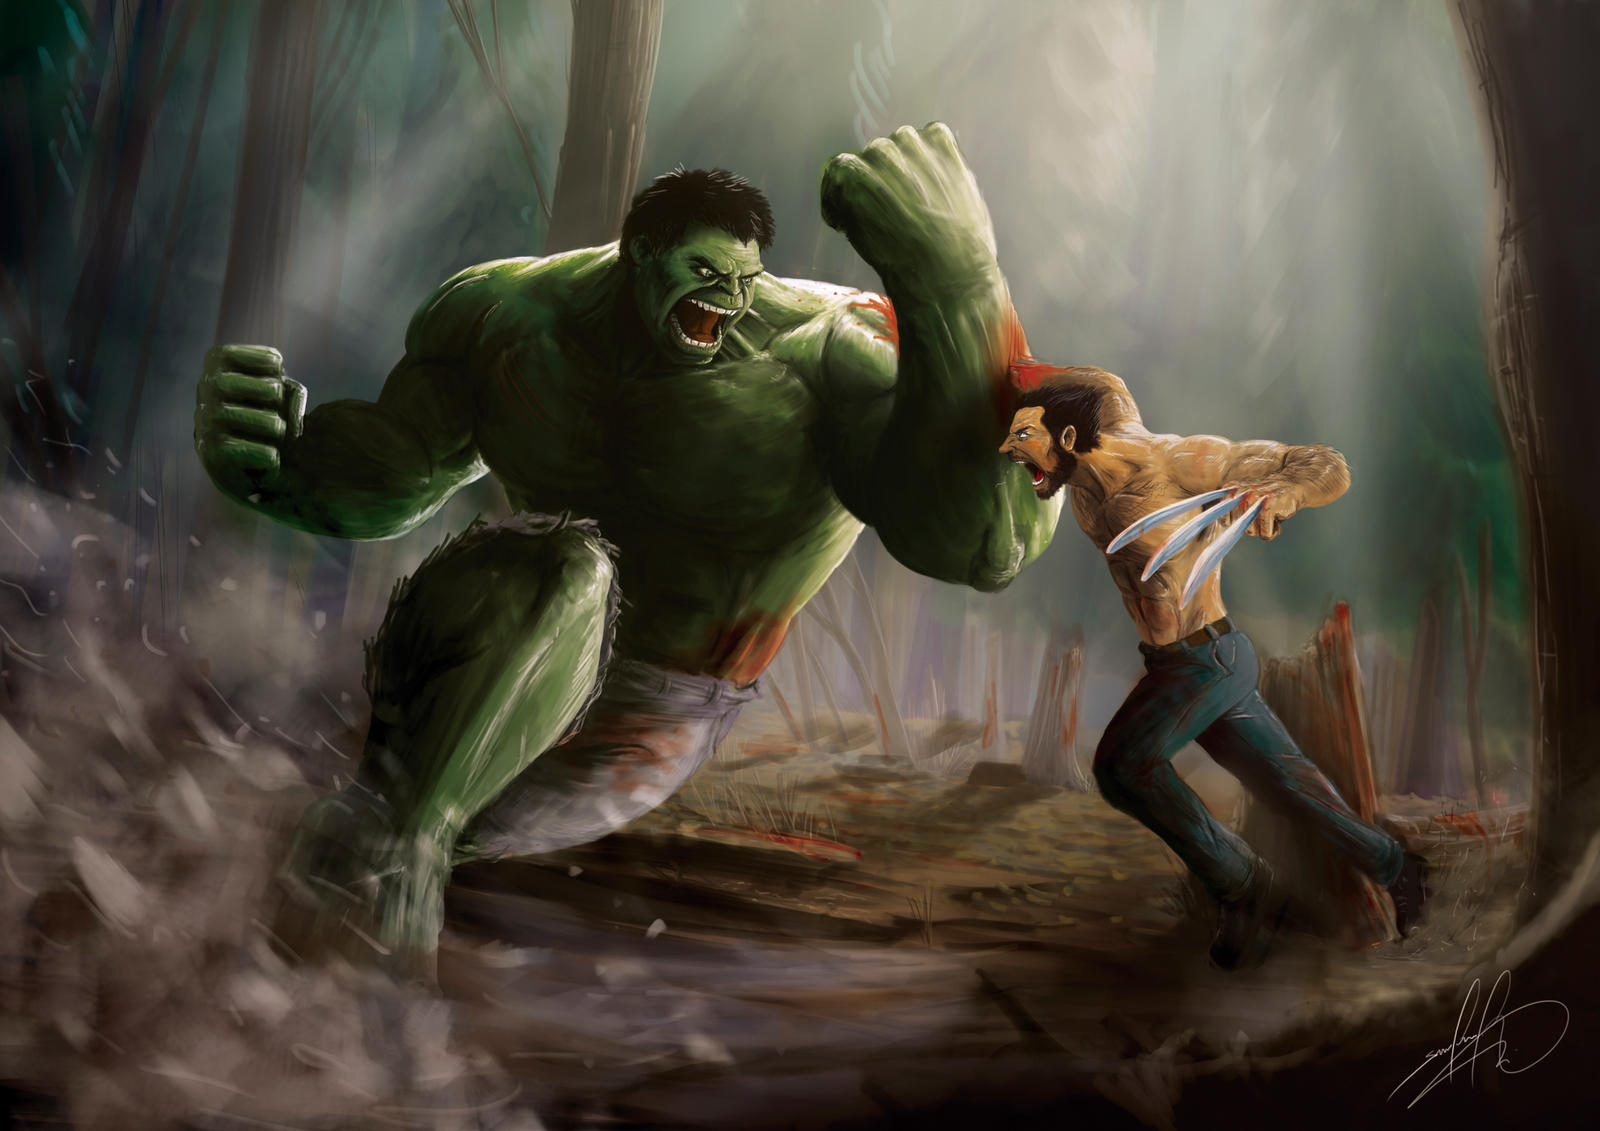 Hulk Vs Wolverine By Wafspr On DeviantArt